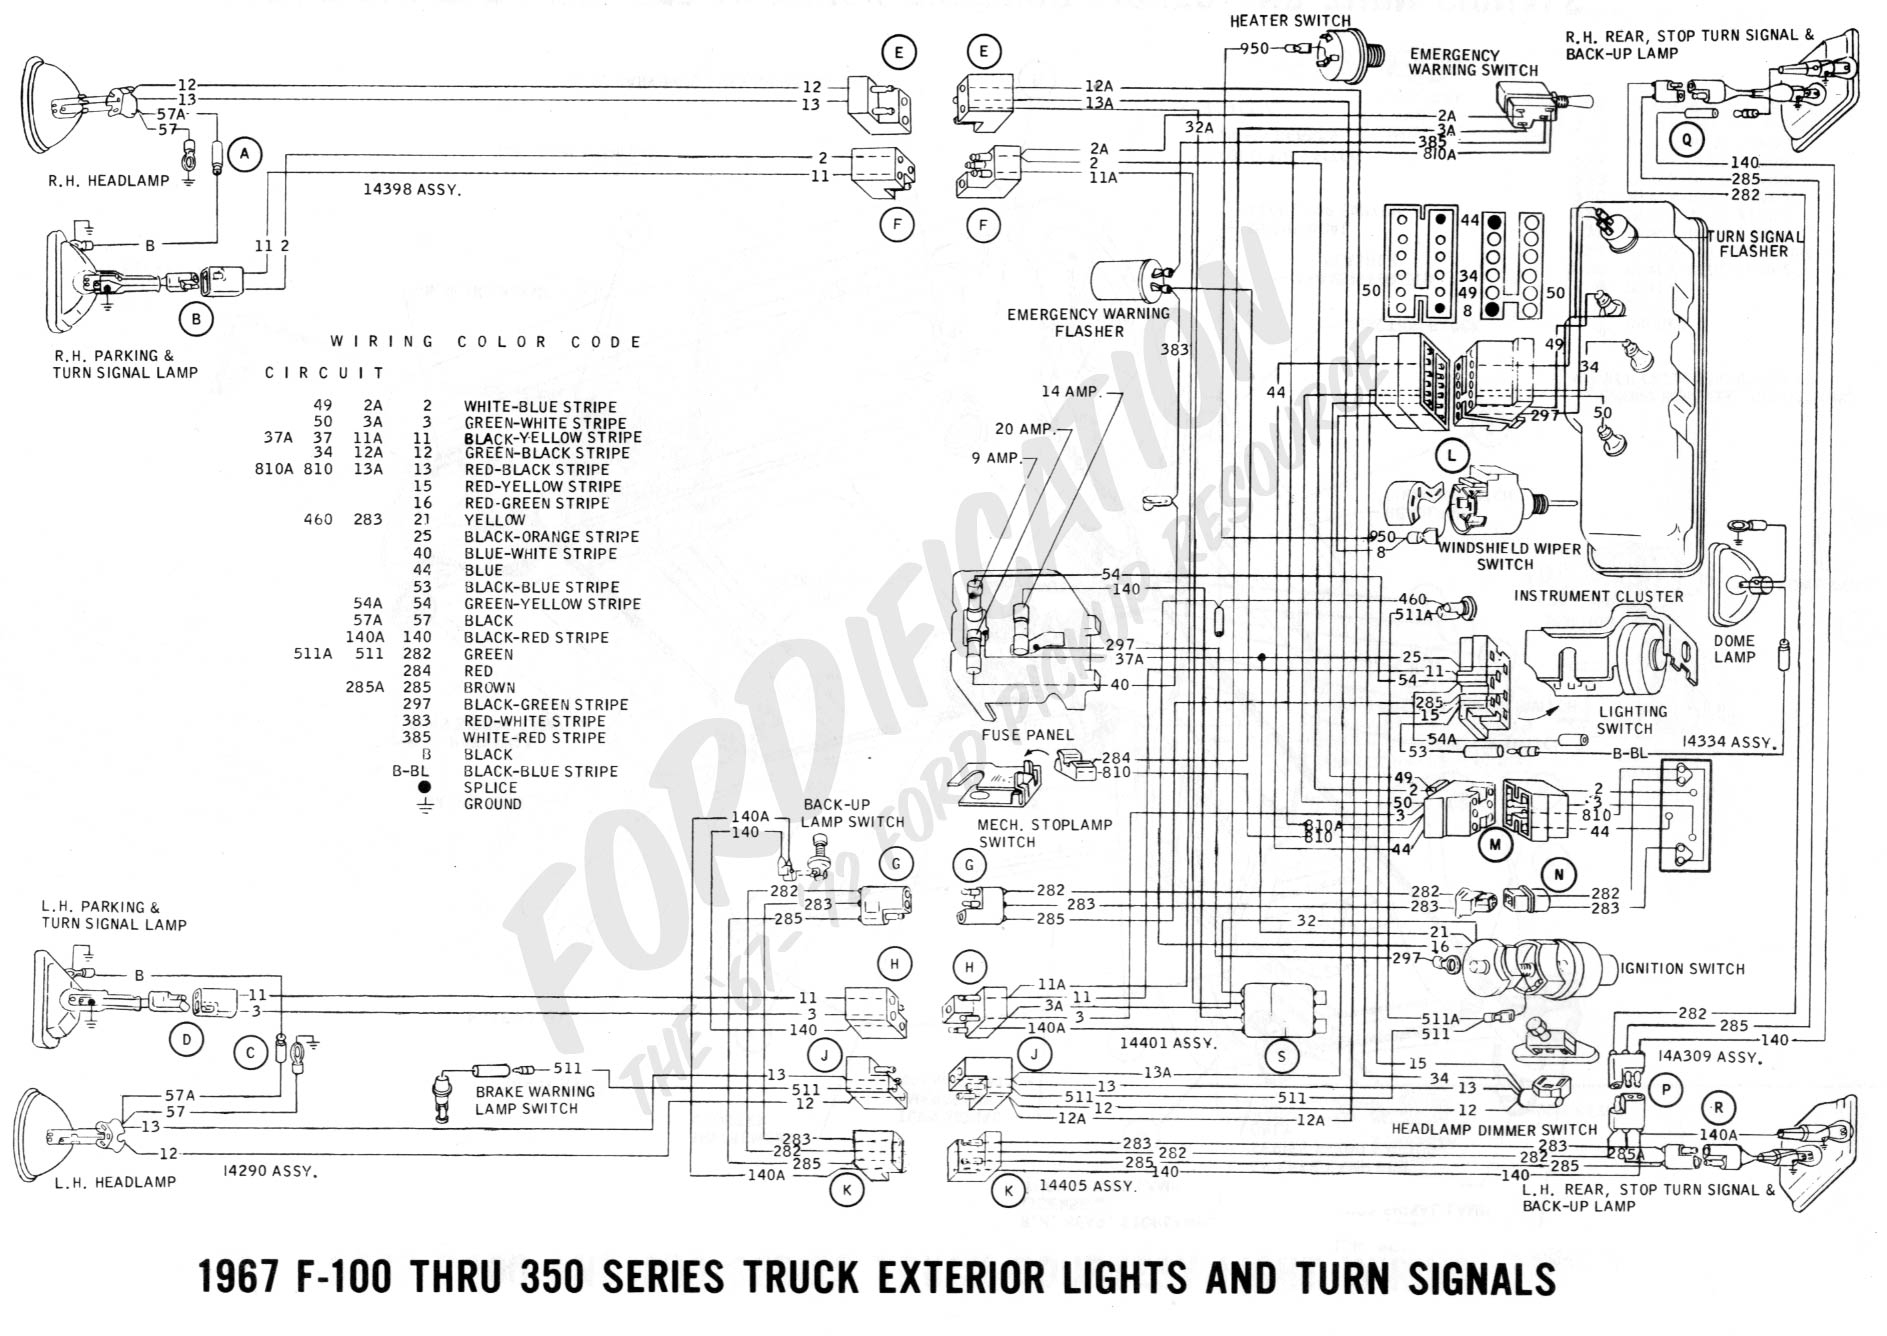 2001 Ford F350 Wiring Diagrams - Wiring Diagram - Ford F250 Trailer Wiring Harness Diagram